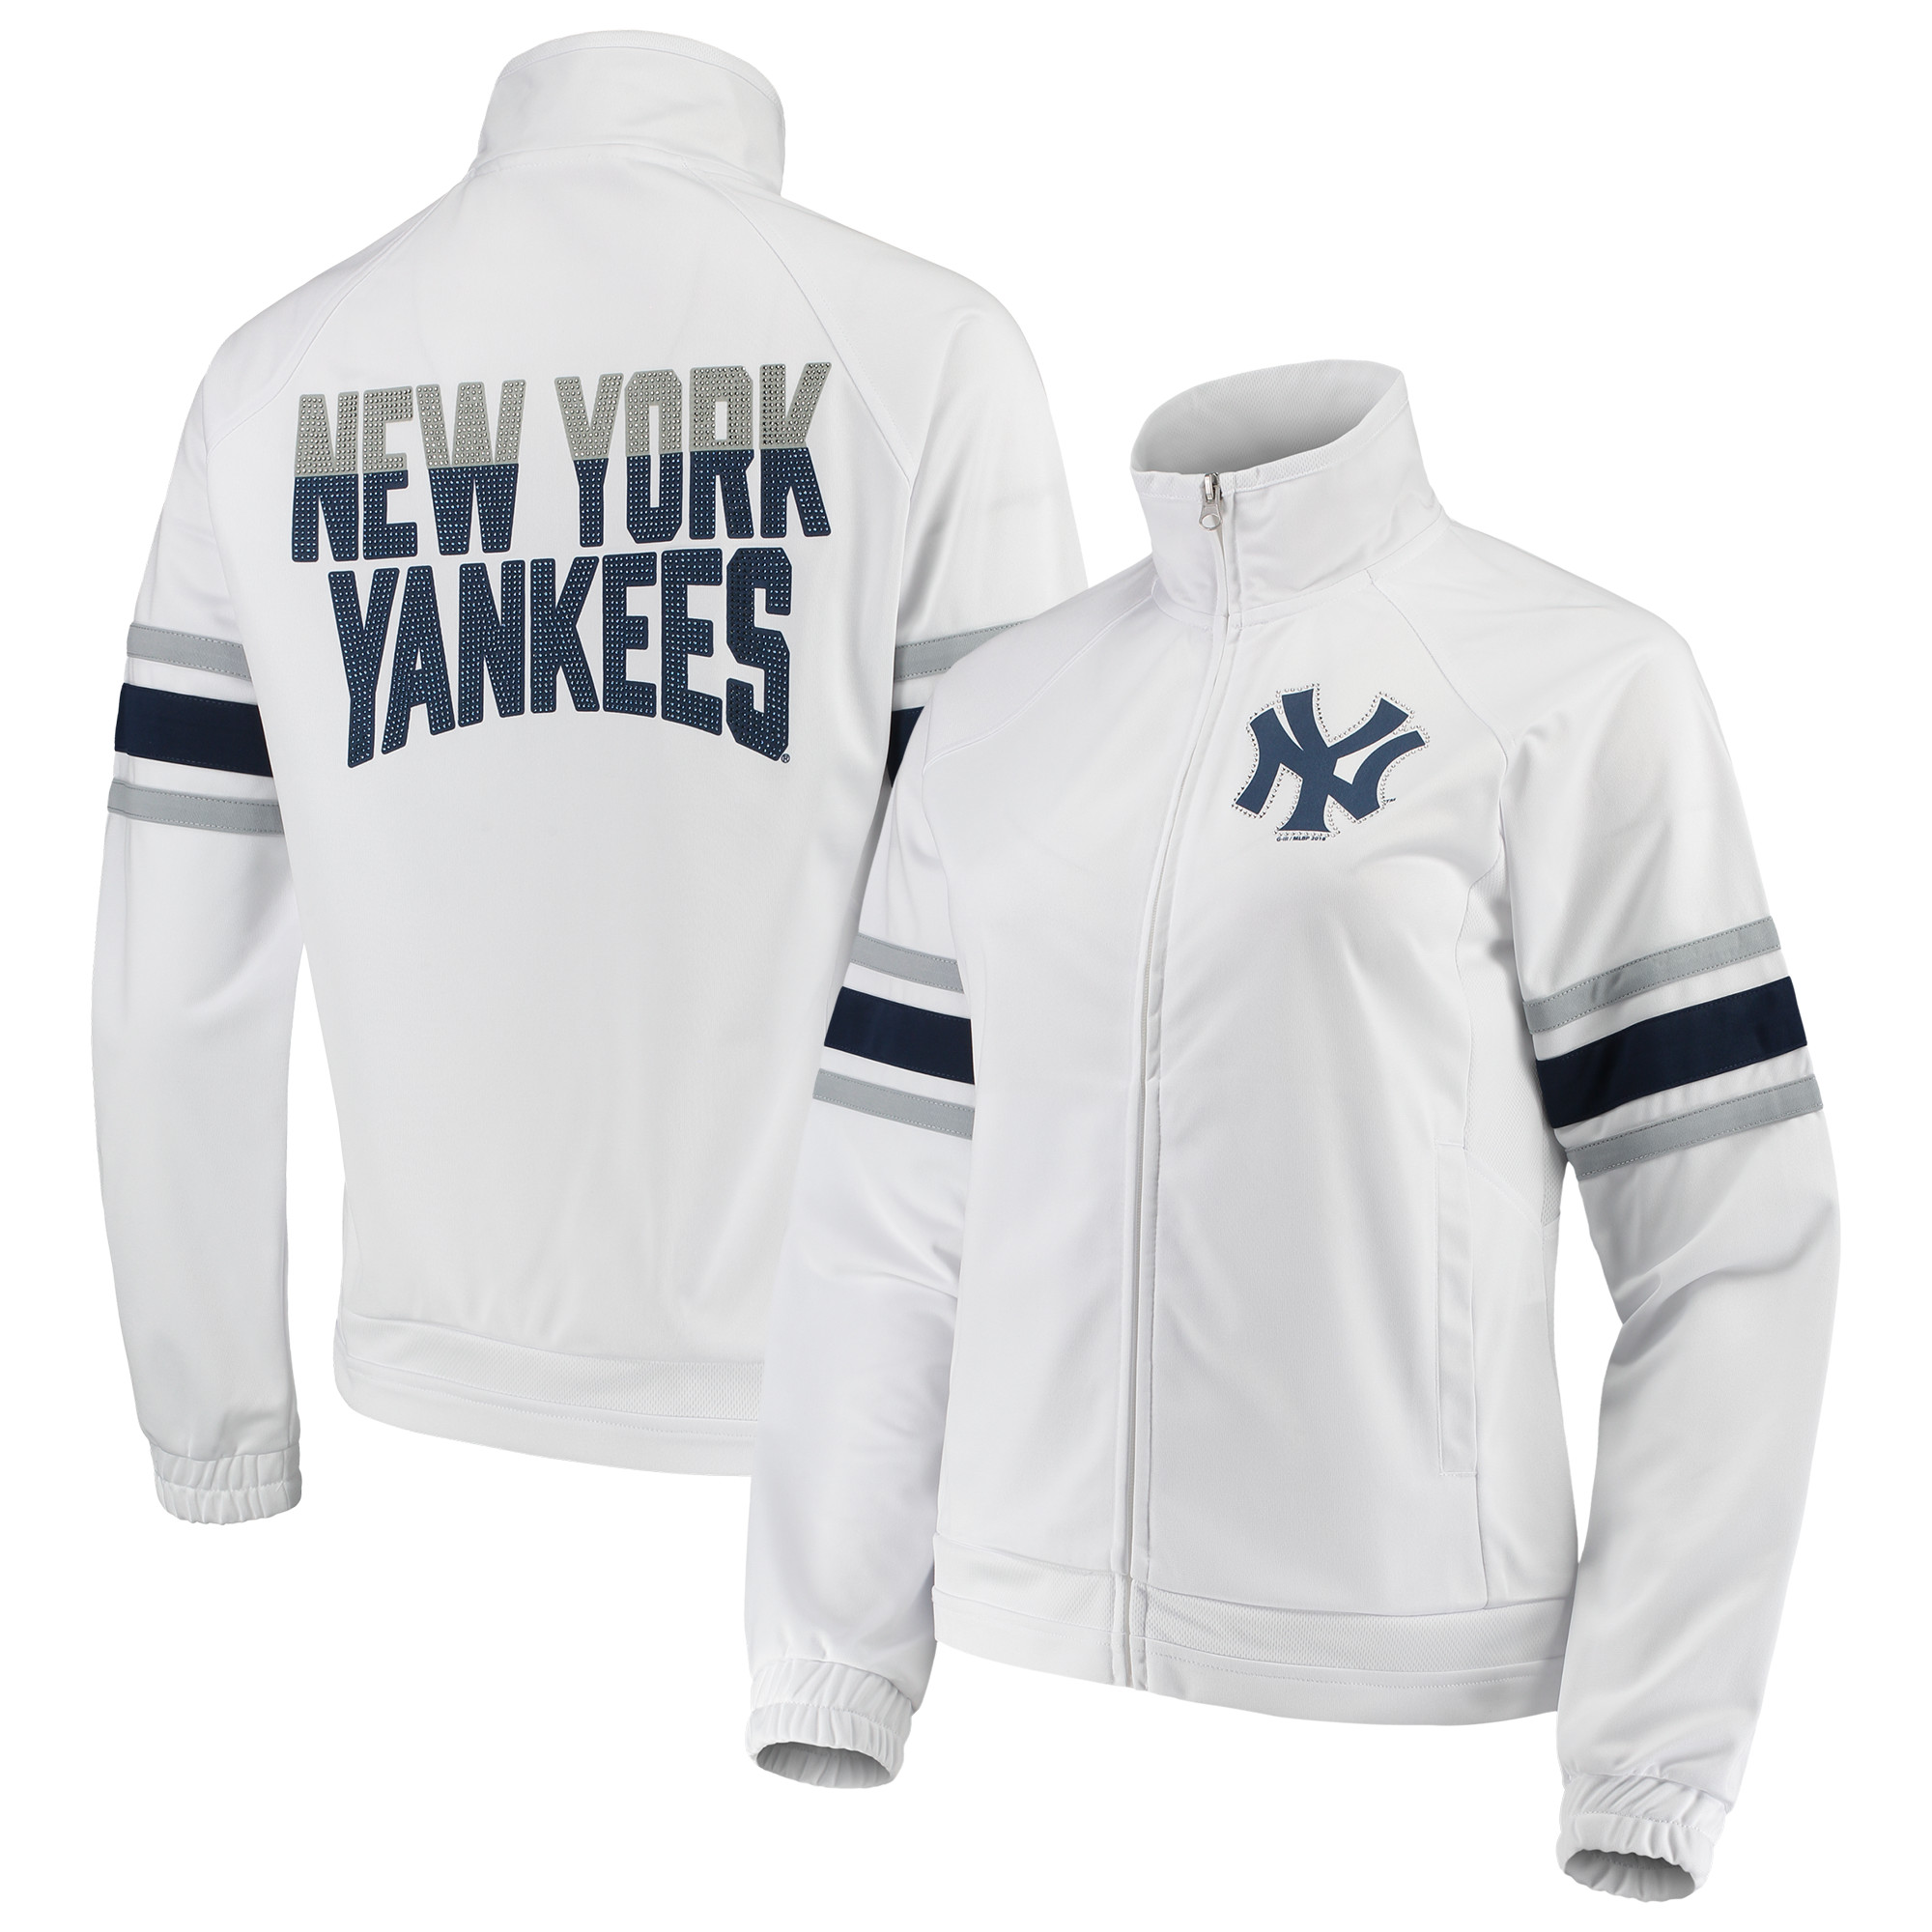 New York Yankees G-III 4Her by Carl Banks Women's Game Score Full-Zip Track Jacket - White